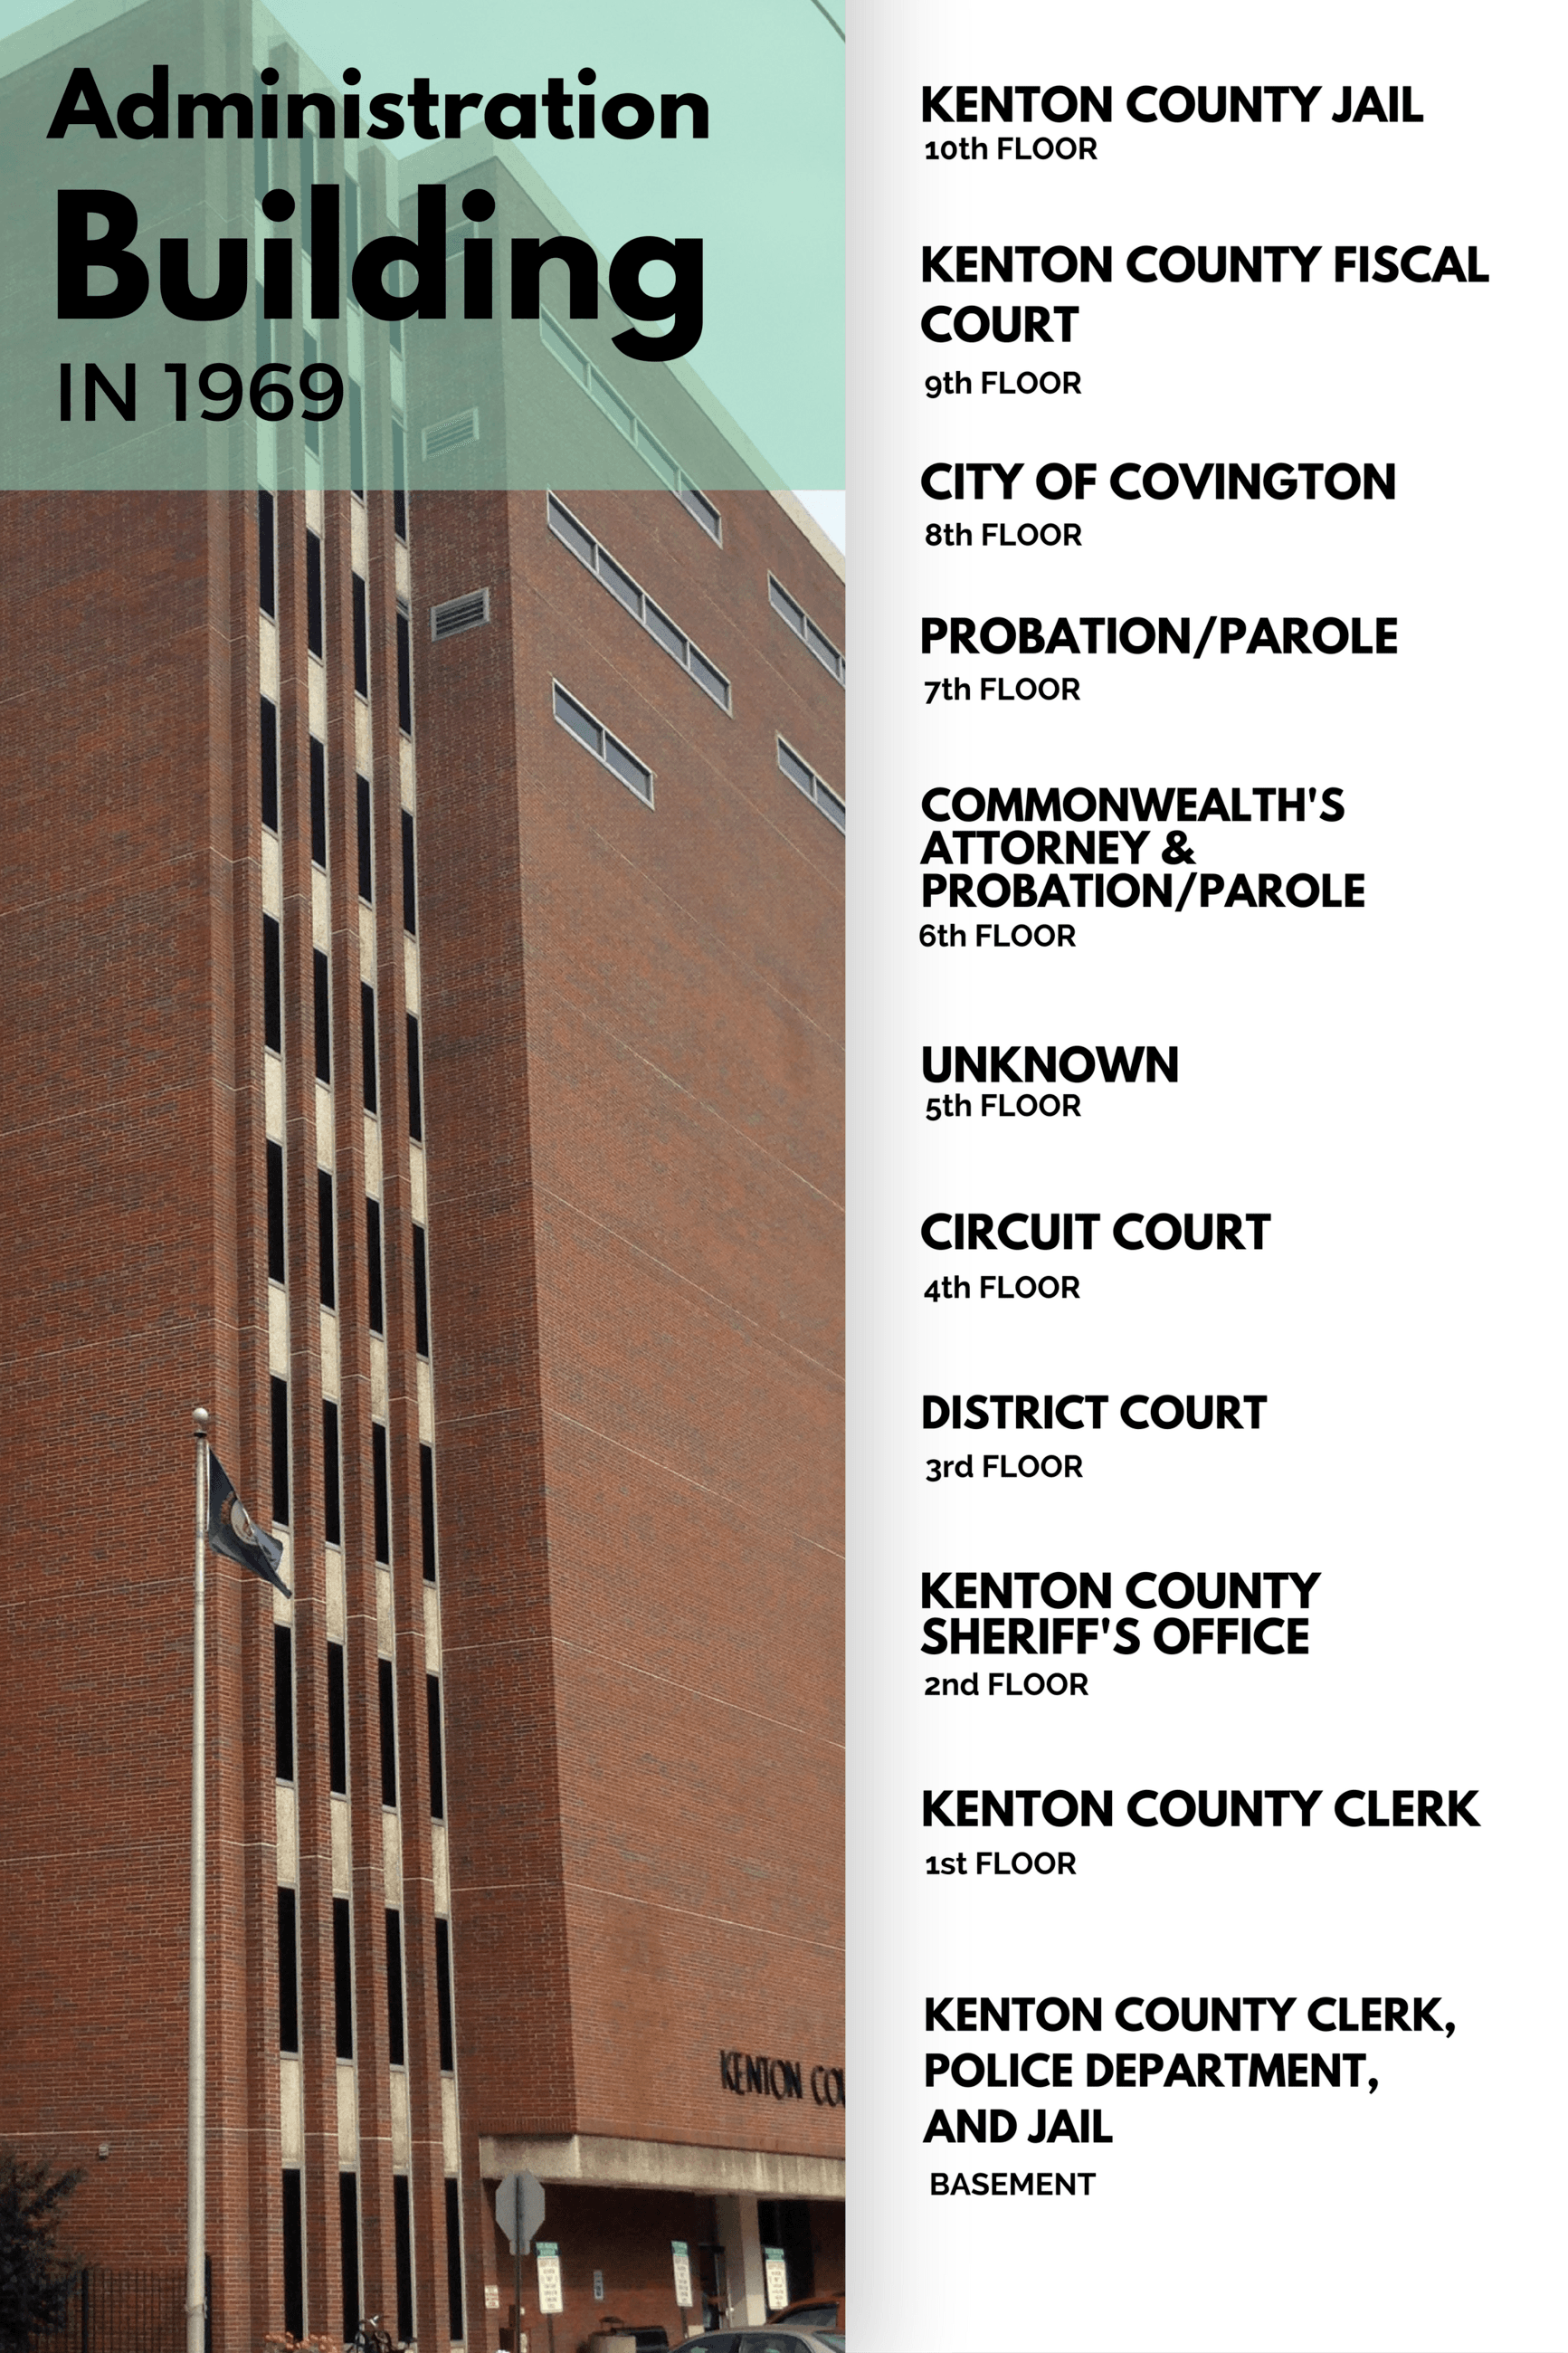 Infographic showing which departments occupied which floors in the Administration Building in 1969